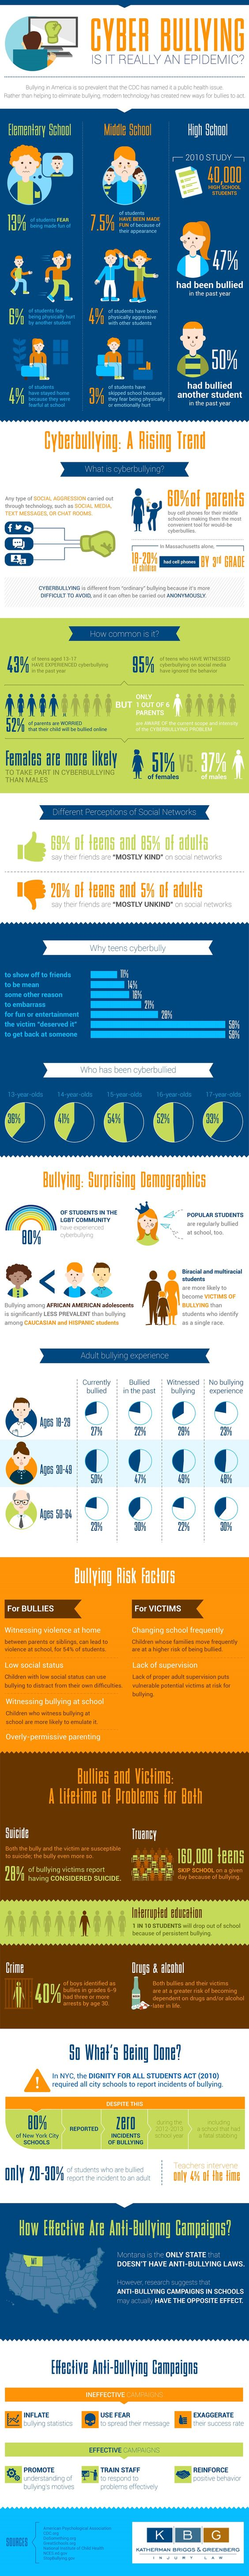 Cyber bullying statistics are highlighted in this infographic.: